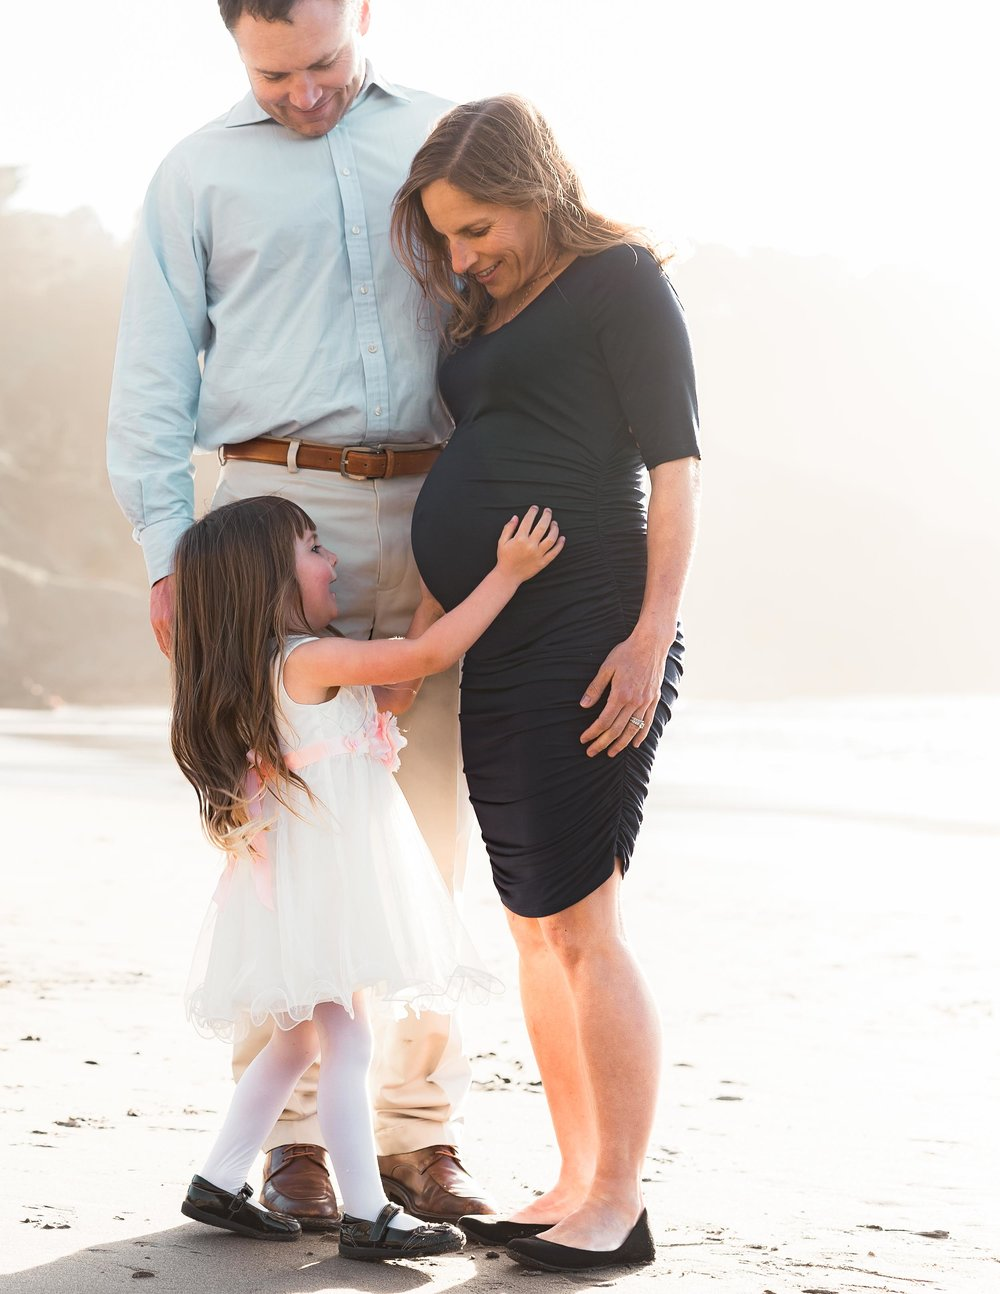 San_Francisco_Bay_Area_Maternity_Photographer_Kristin_Lunny-14.jpg